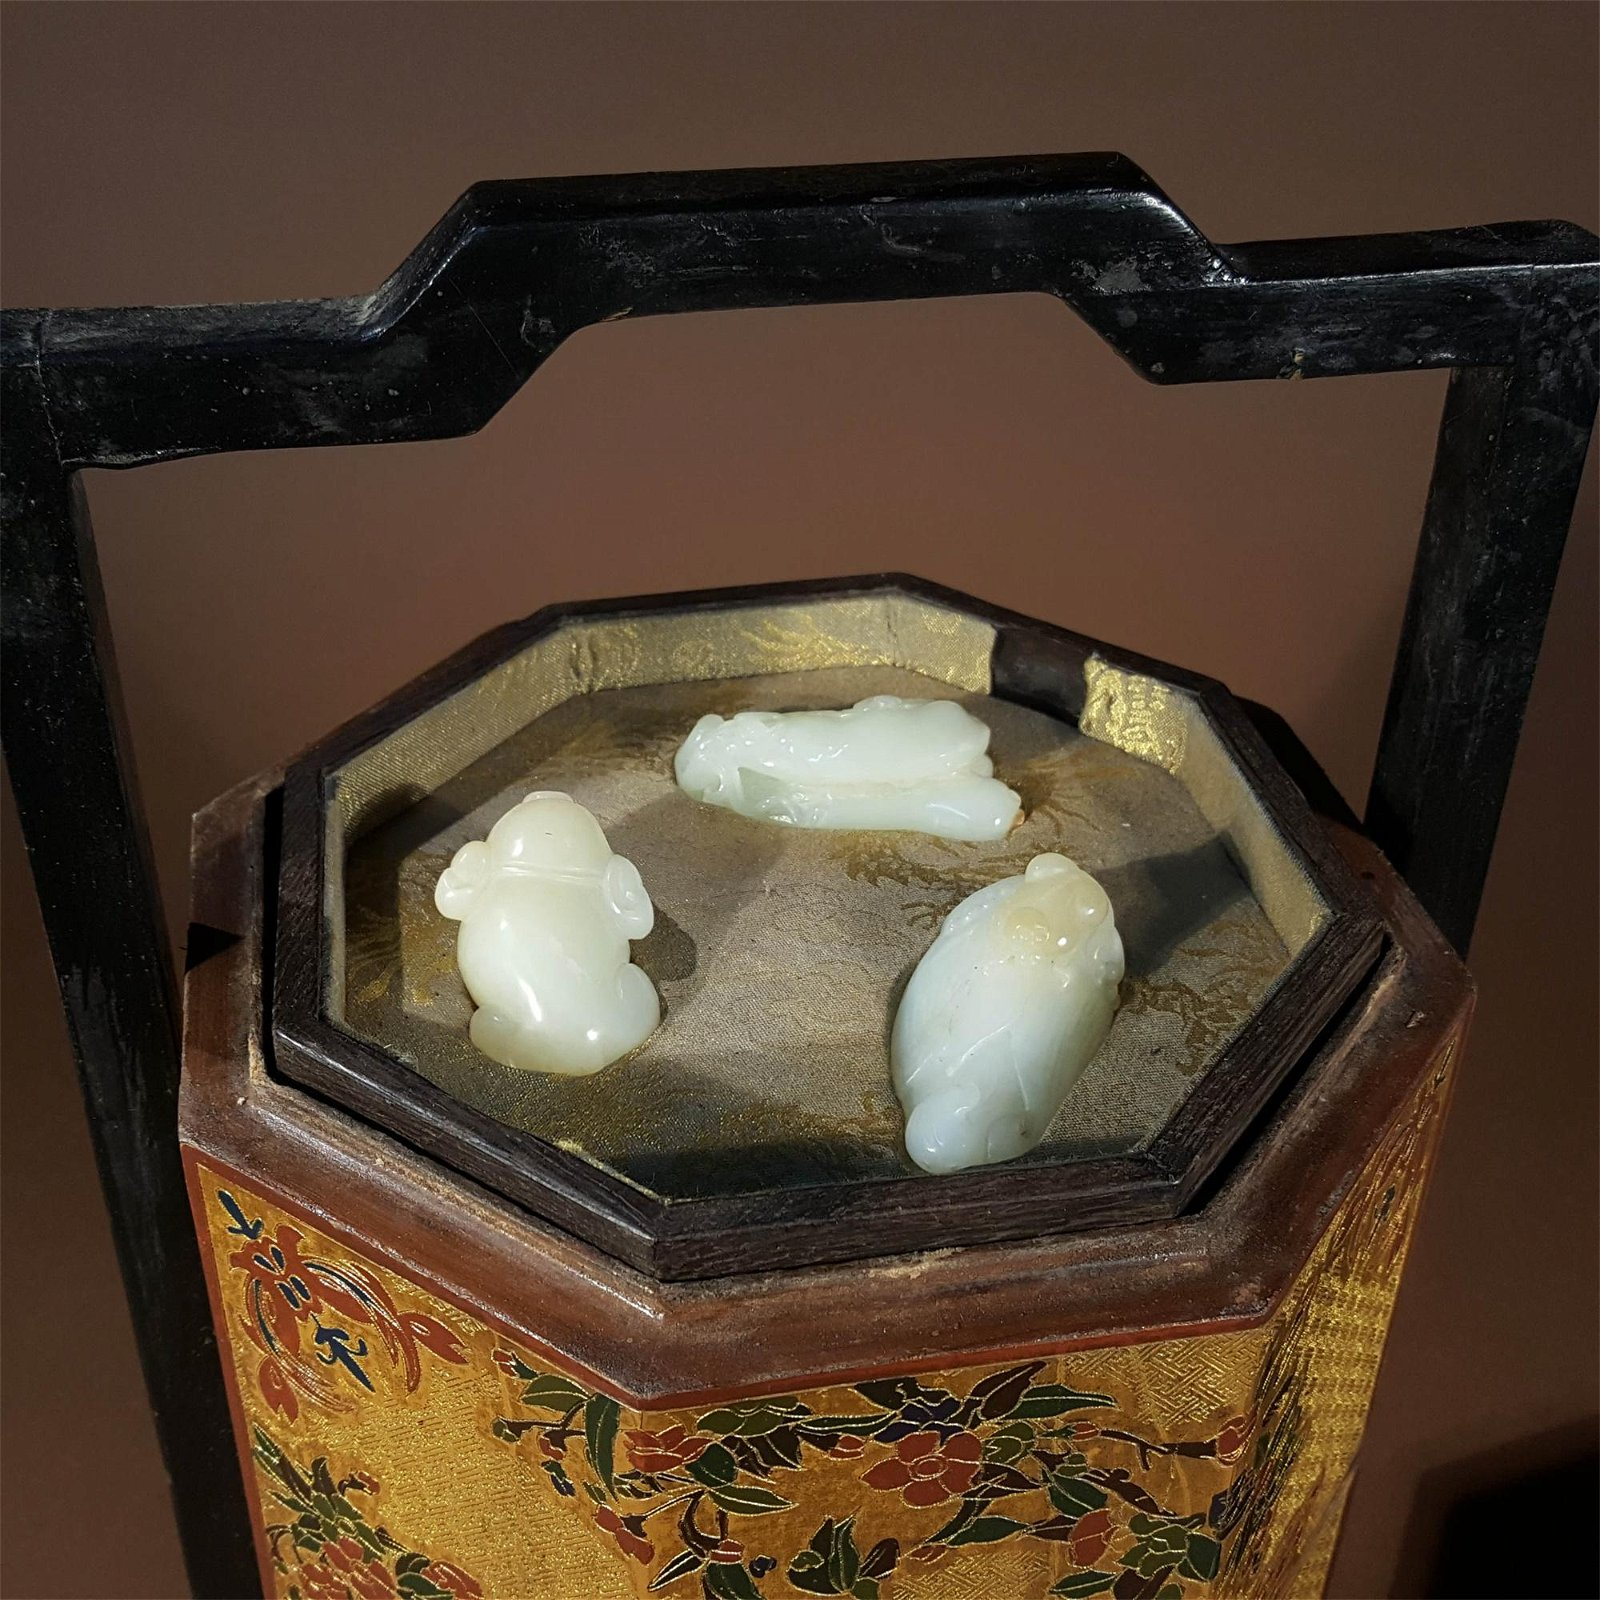 A QING DYNASTY CARVED WHITE JADE BOX SET